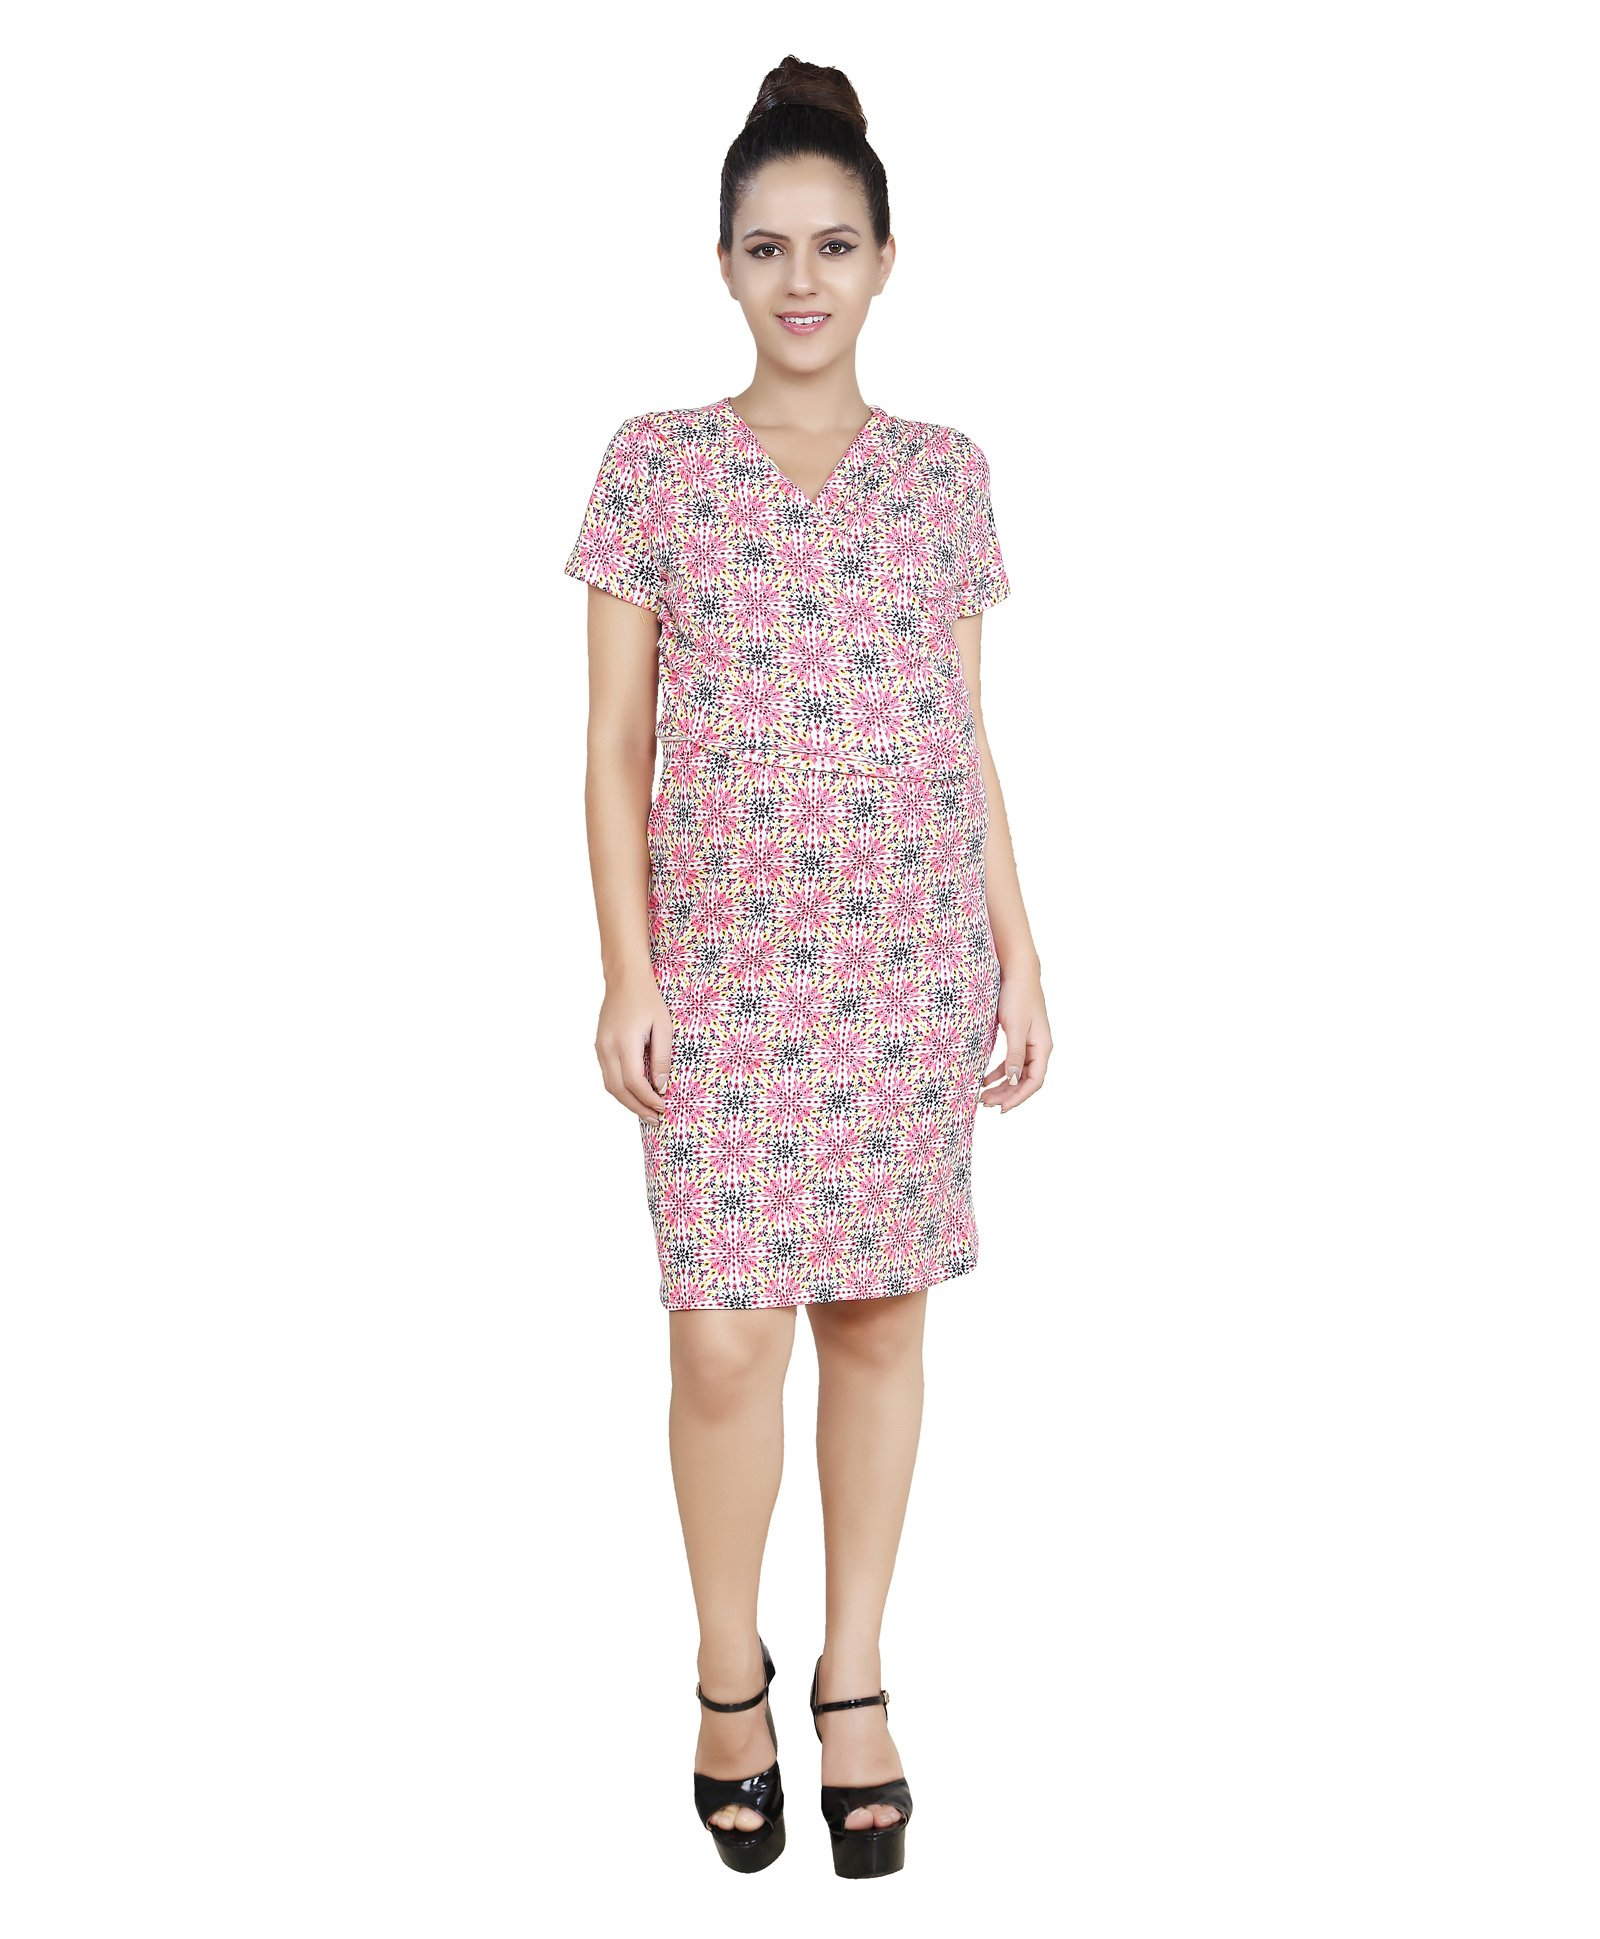 2dff38e9706 Blush 9 Knee Length Printed Maternity Dress White   Pink Online in ...